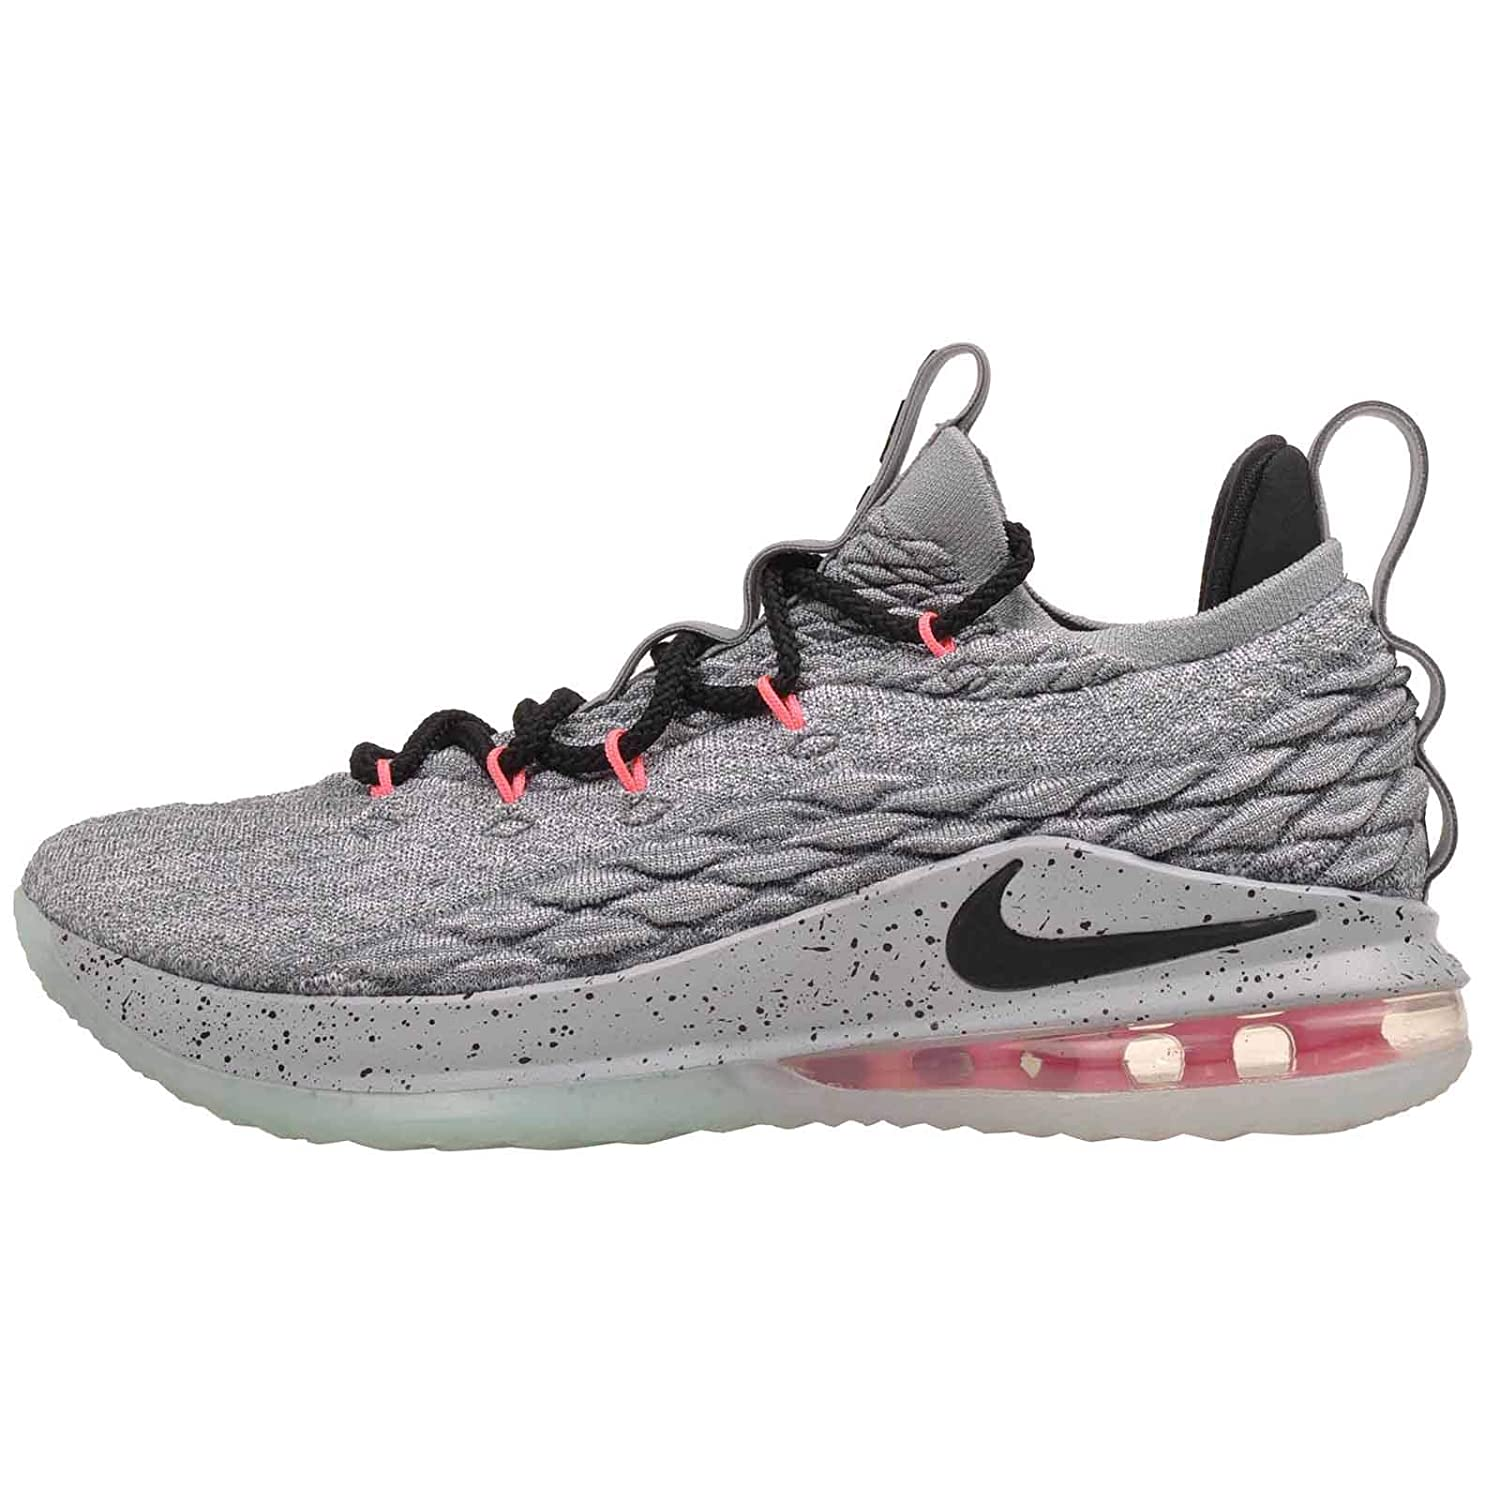 best service 68f92 2a1fa Nike Men's Lebron 15 Low Basketball Shoes: Amazon.ca: Shoes ...